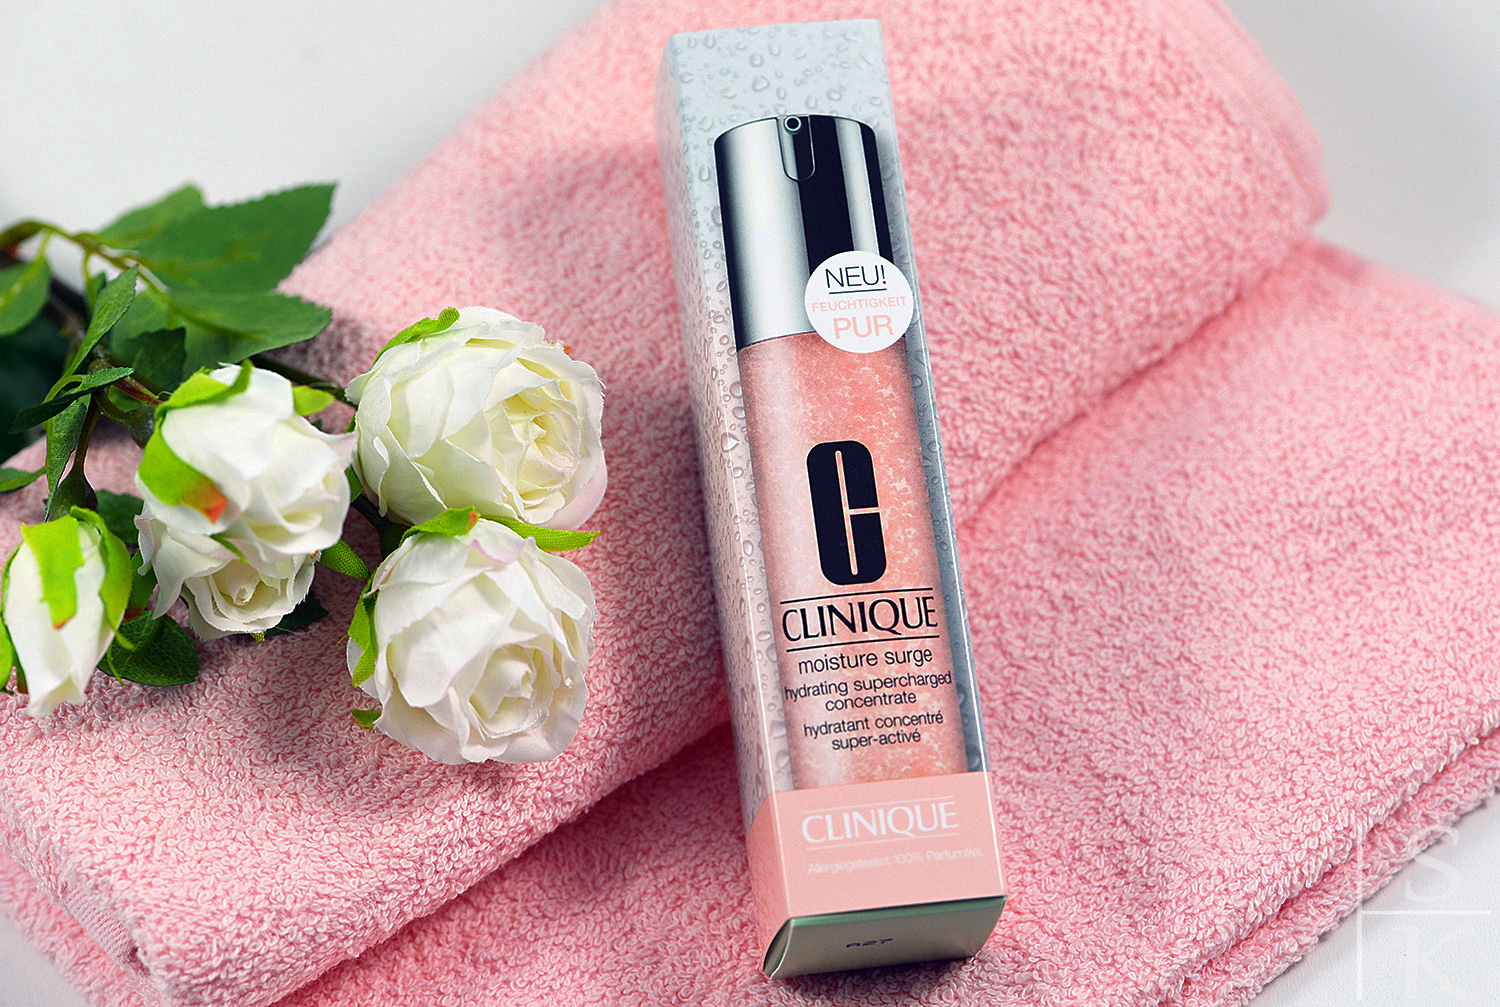 Review Clinique Moisture Surge Hydrating Supercharged Concentrate @Horizont-Blog